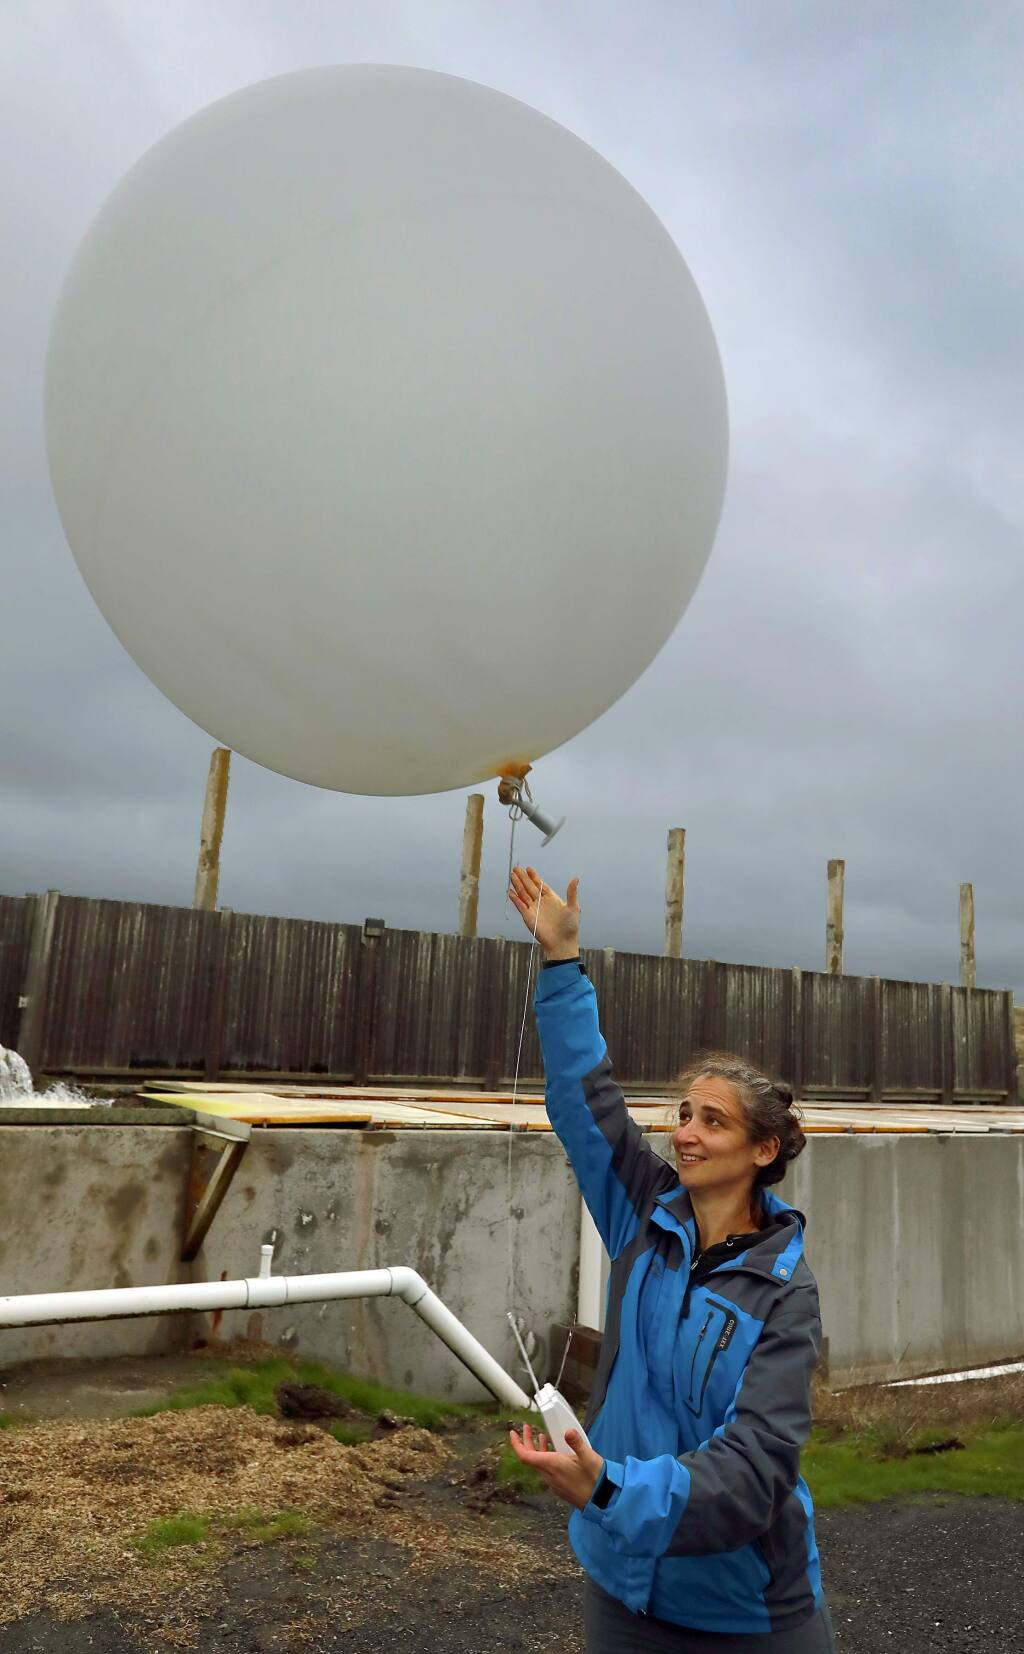 Anna Wilson, with the Scripps Institution of Oceanography, releases a weather balloon to study atmospheric rivers in the region. The balloon was released Sunday at 4 p.m. at the Bodega Marine Labs at the same time as another was released near Lake Mendocino in Ukiah. (John Burgess/The Press Democrat)